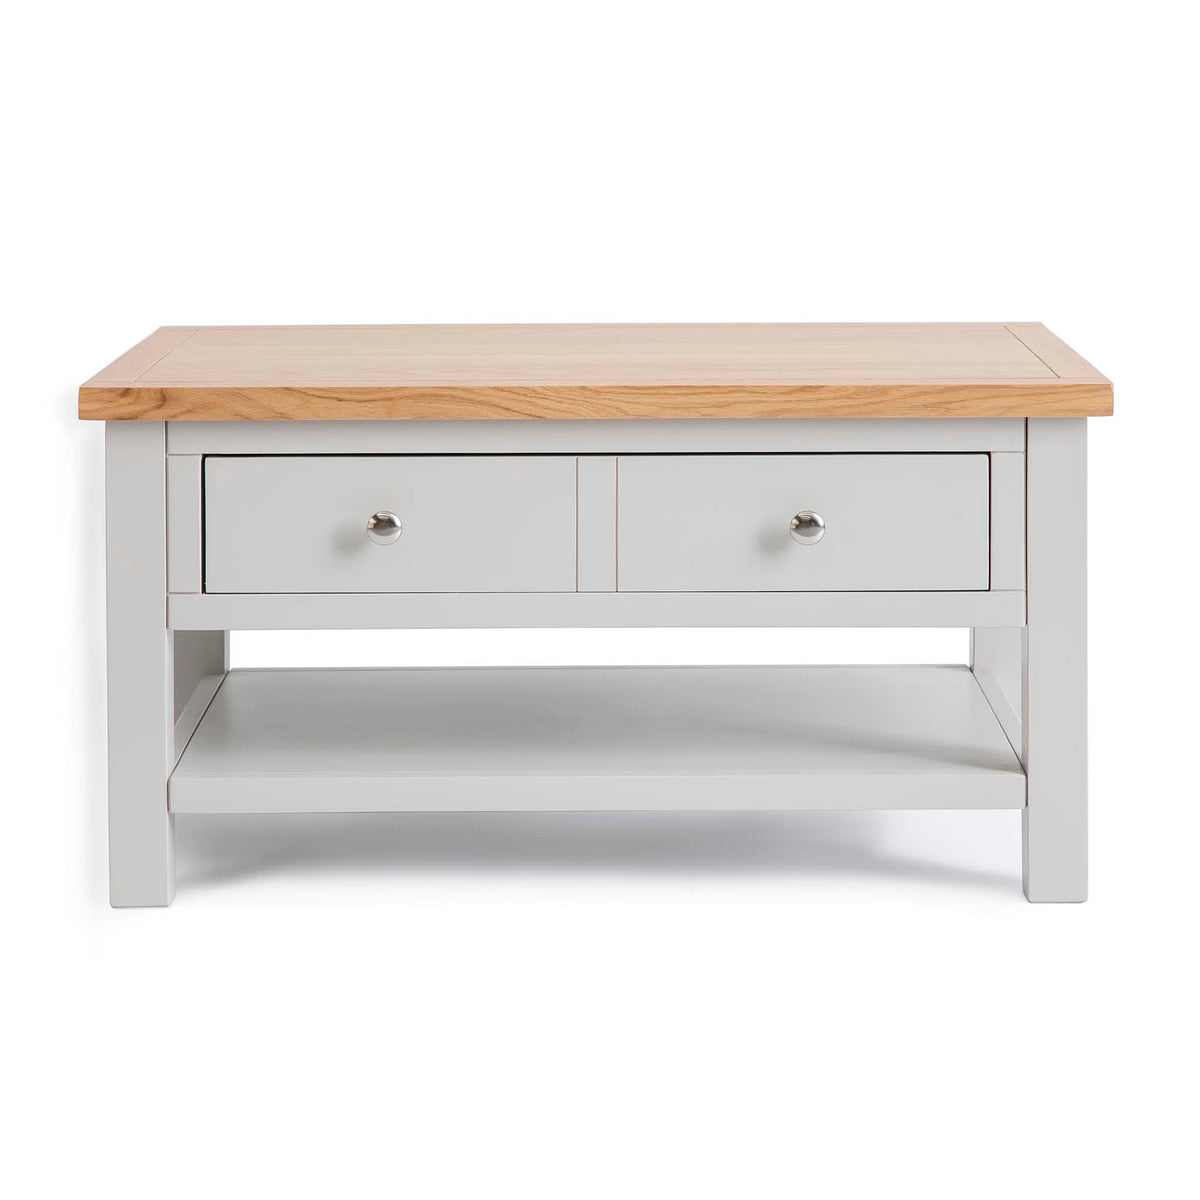 Farrow Grey Coffee Table with Drawer by Roseland Furniture